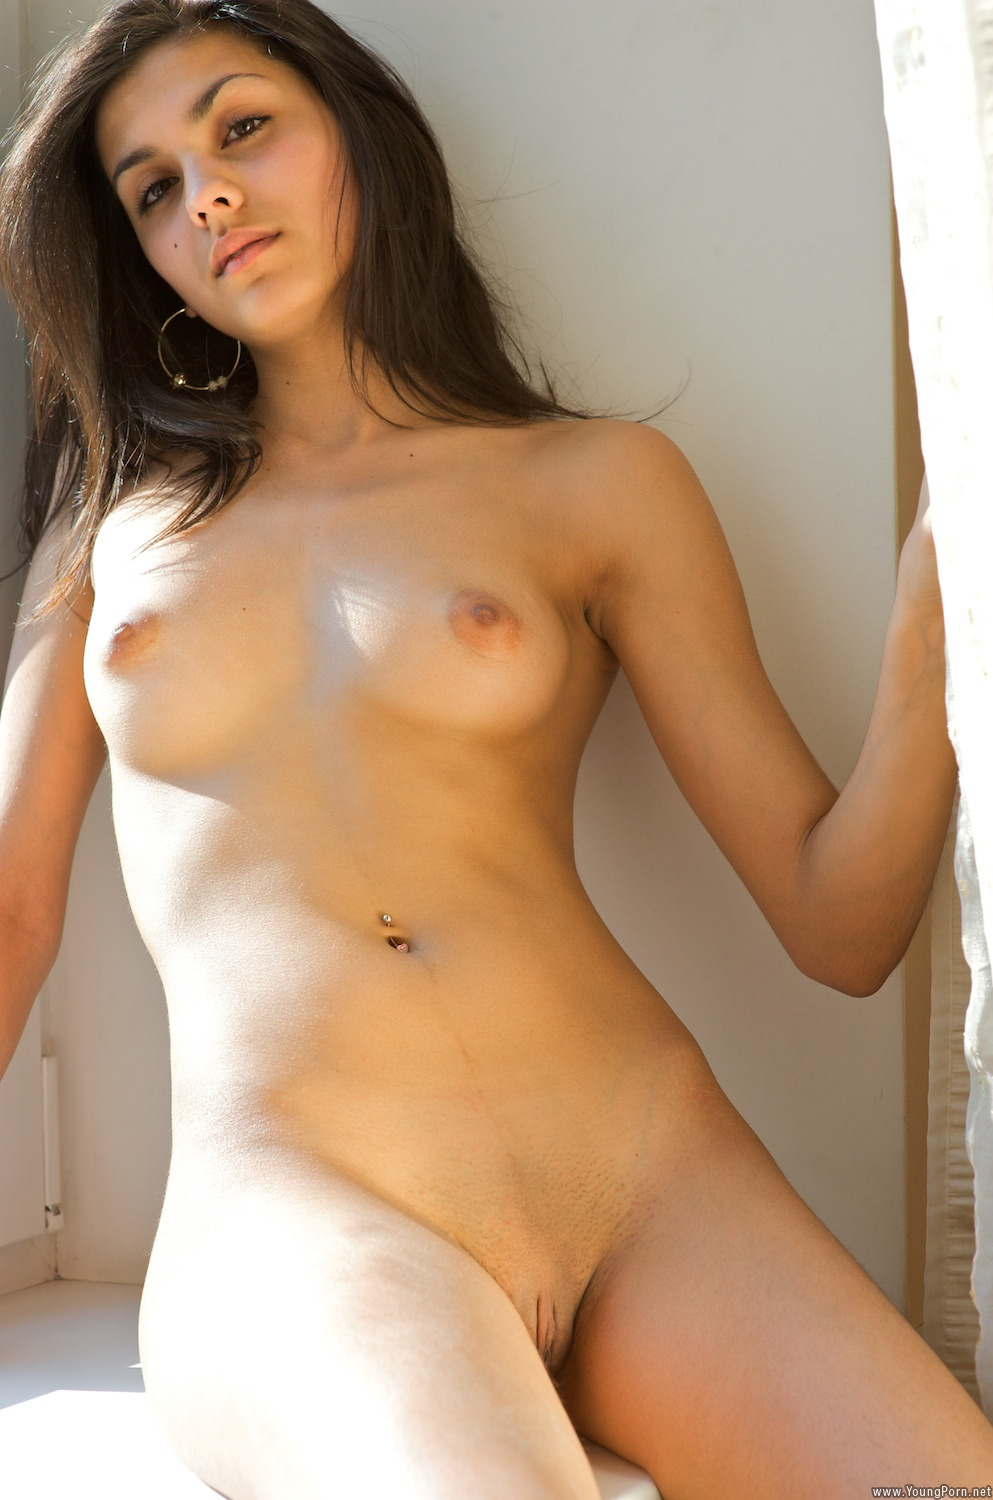 Nude pics of hot indian girls